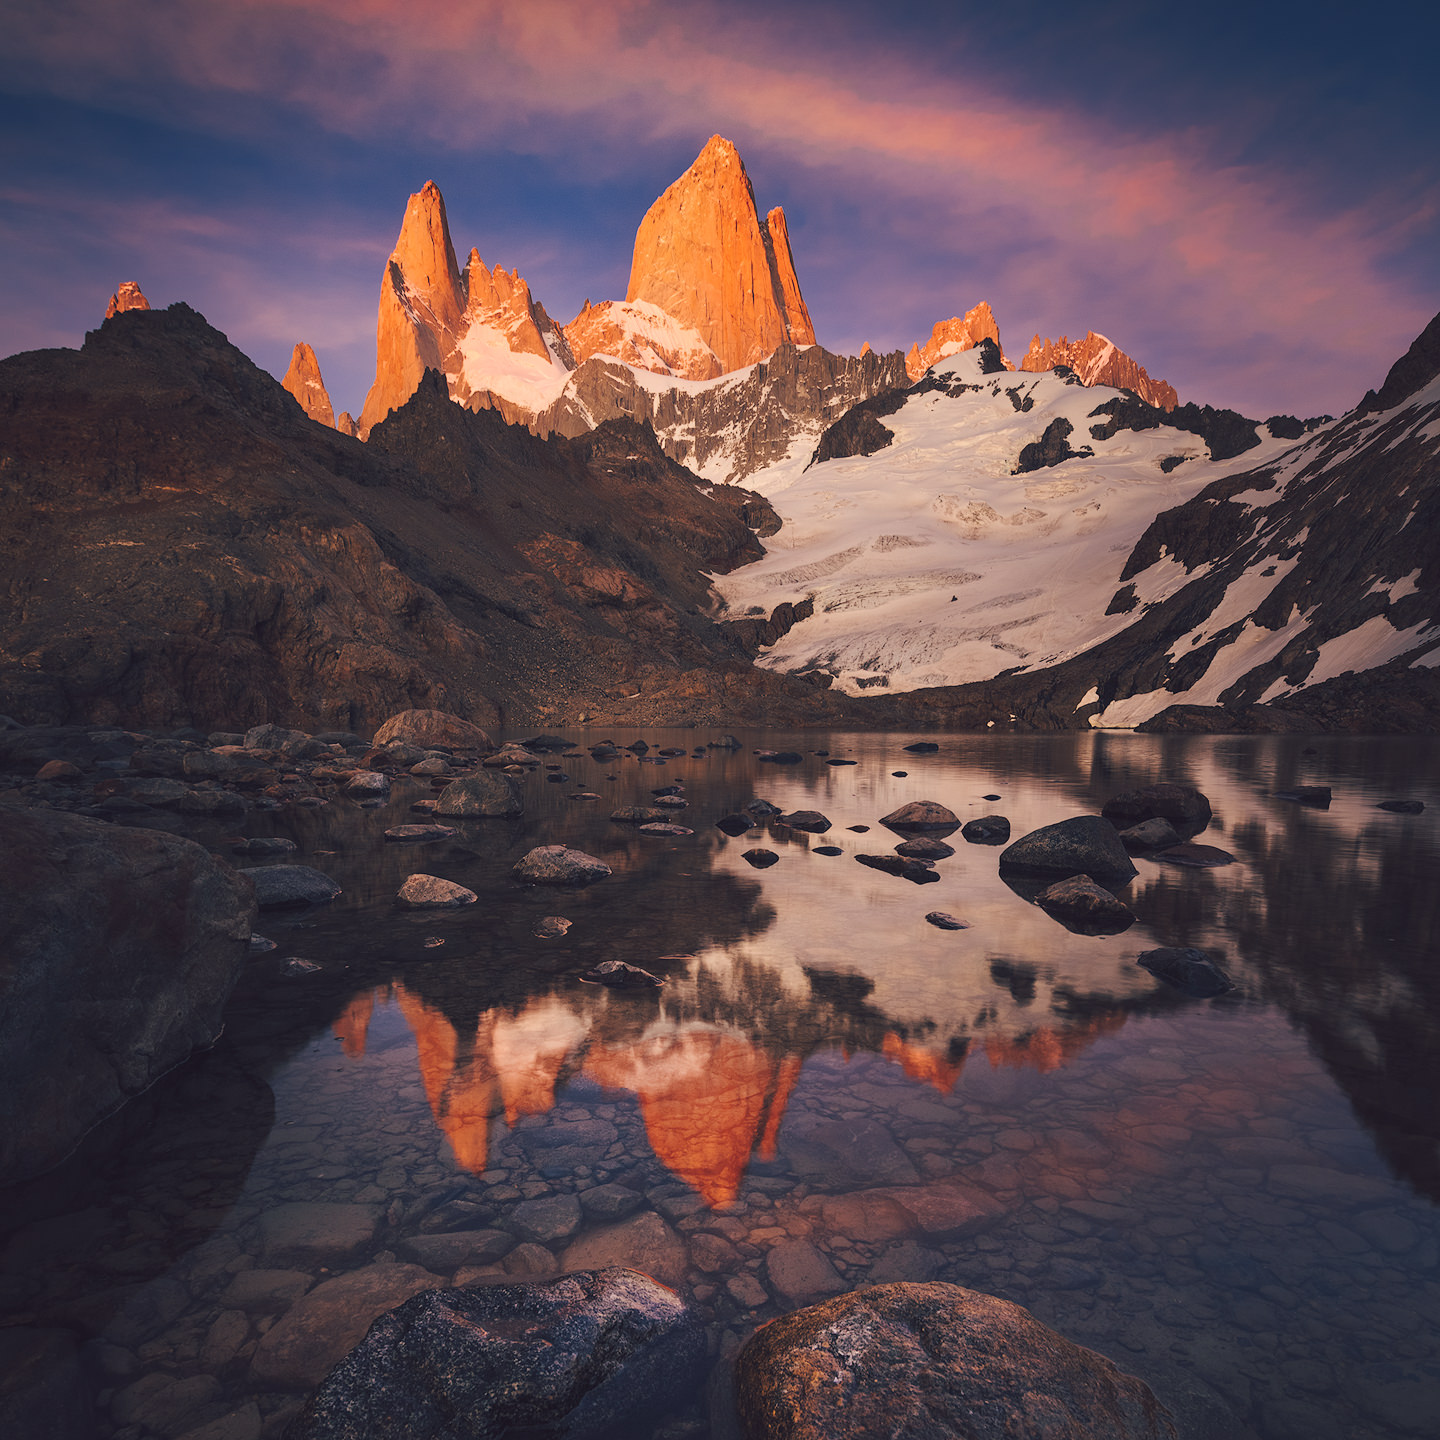 Fitz Roy reflected in Laguna de los Tres at sunrise.